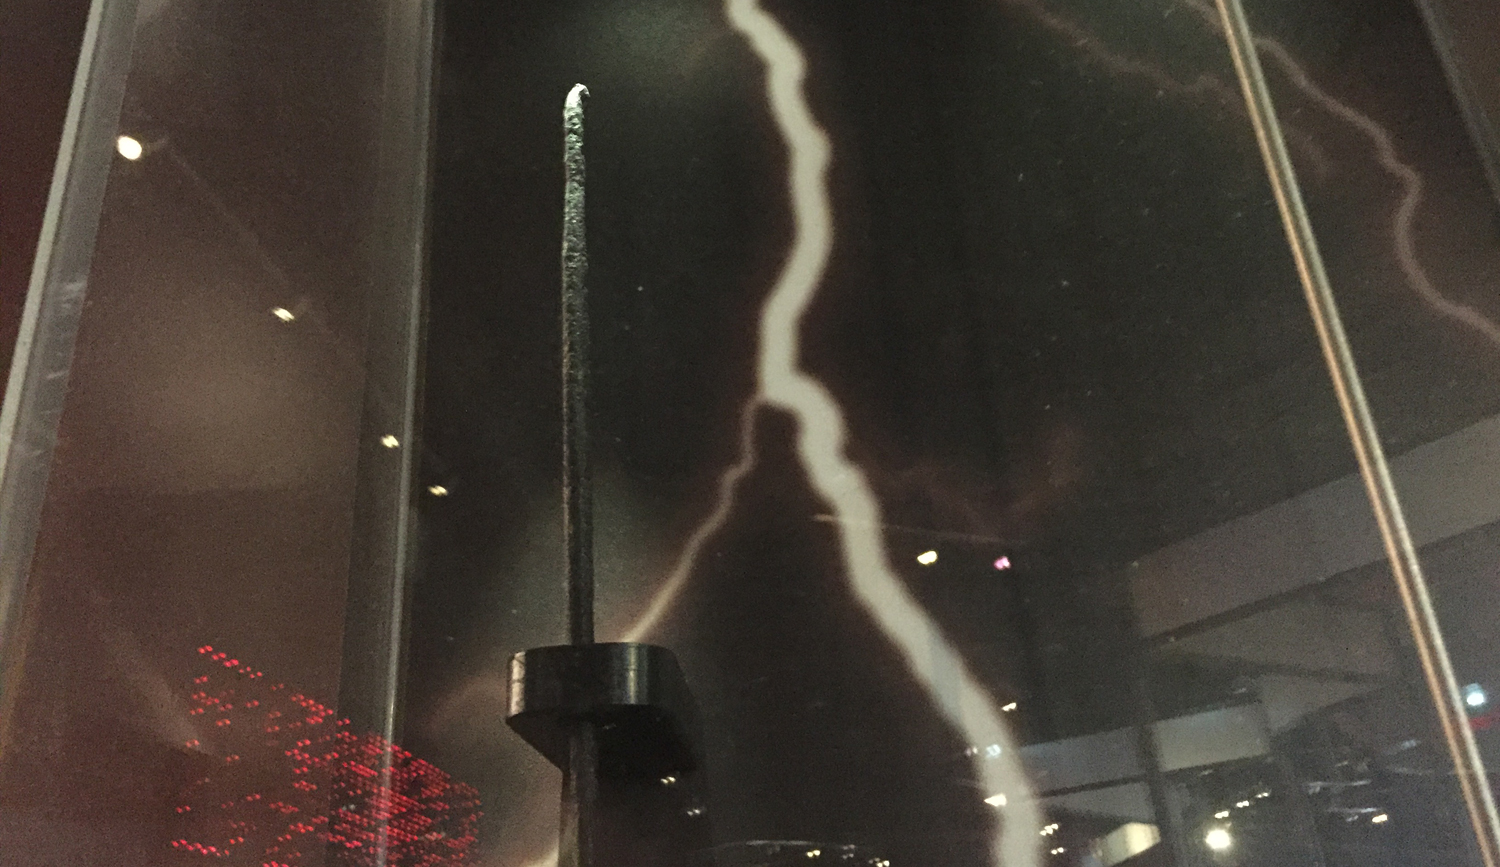 Franklin's Lightning Rod (Fragment)